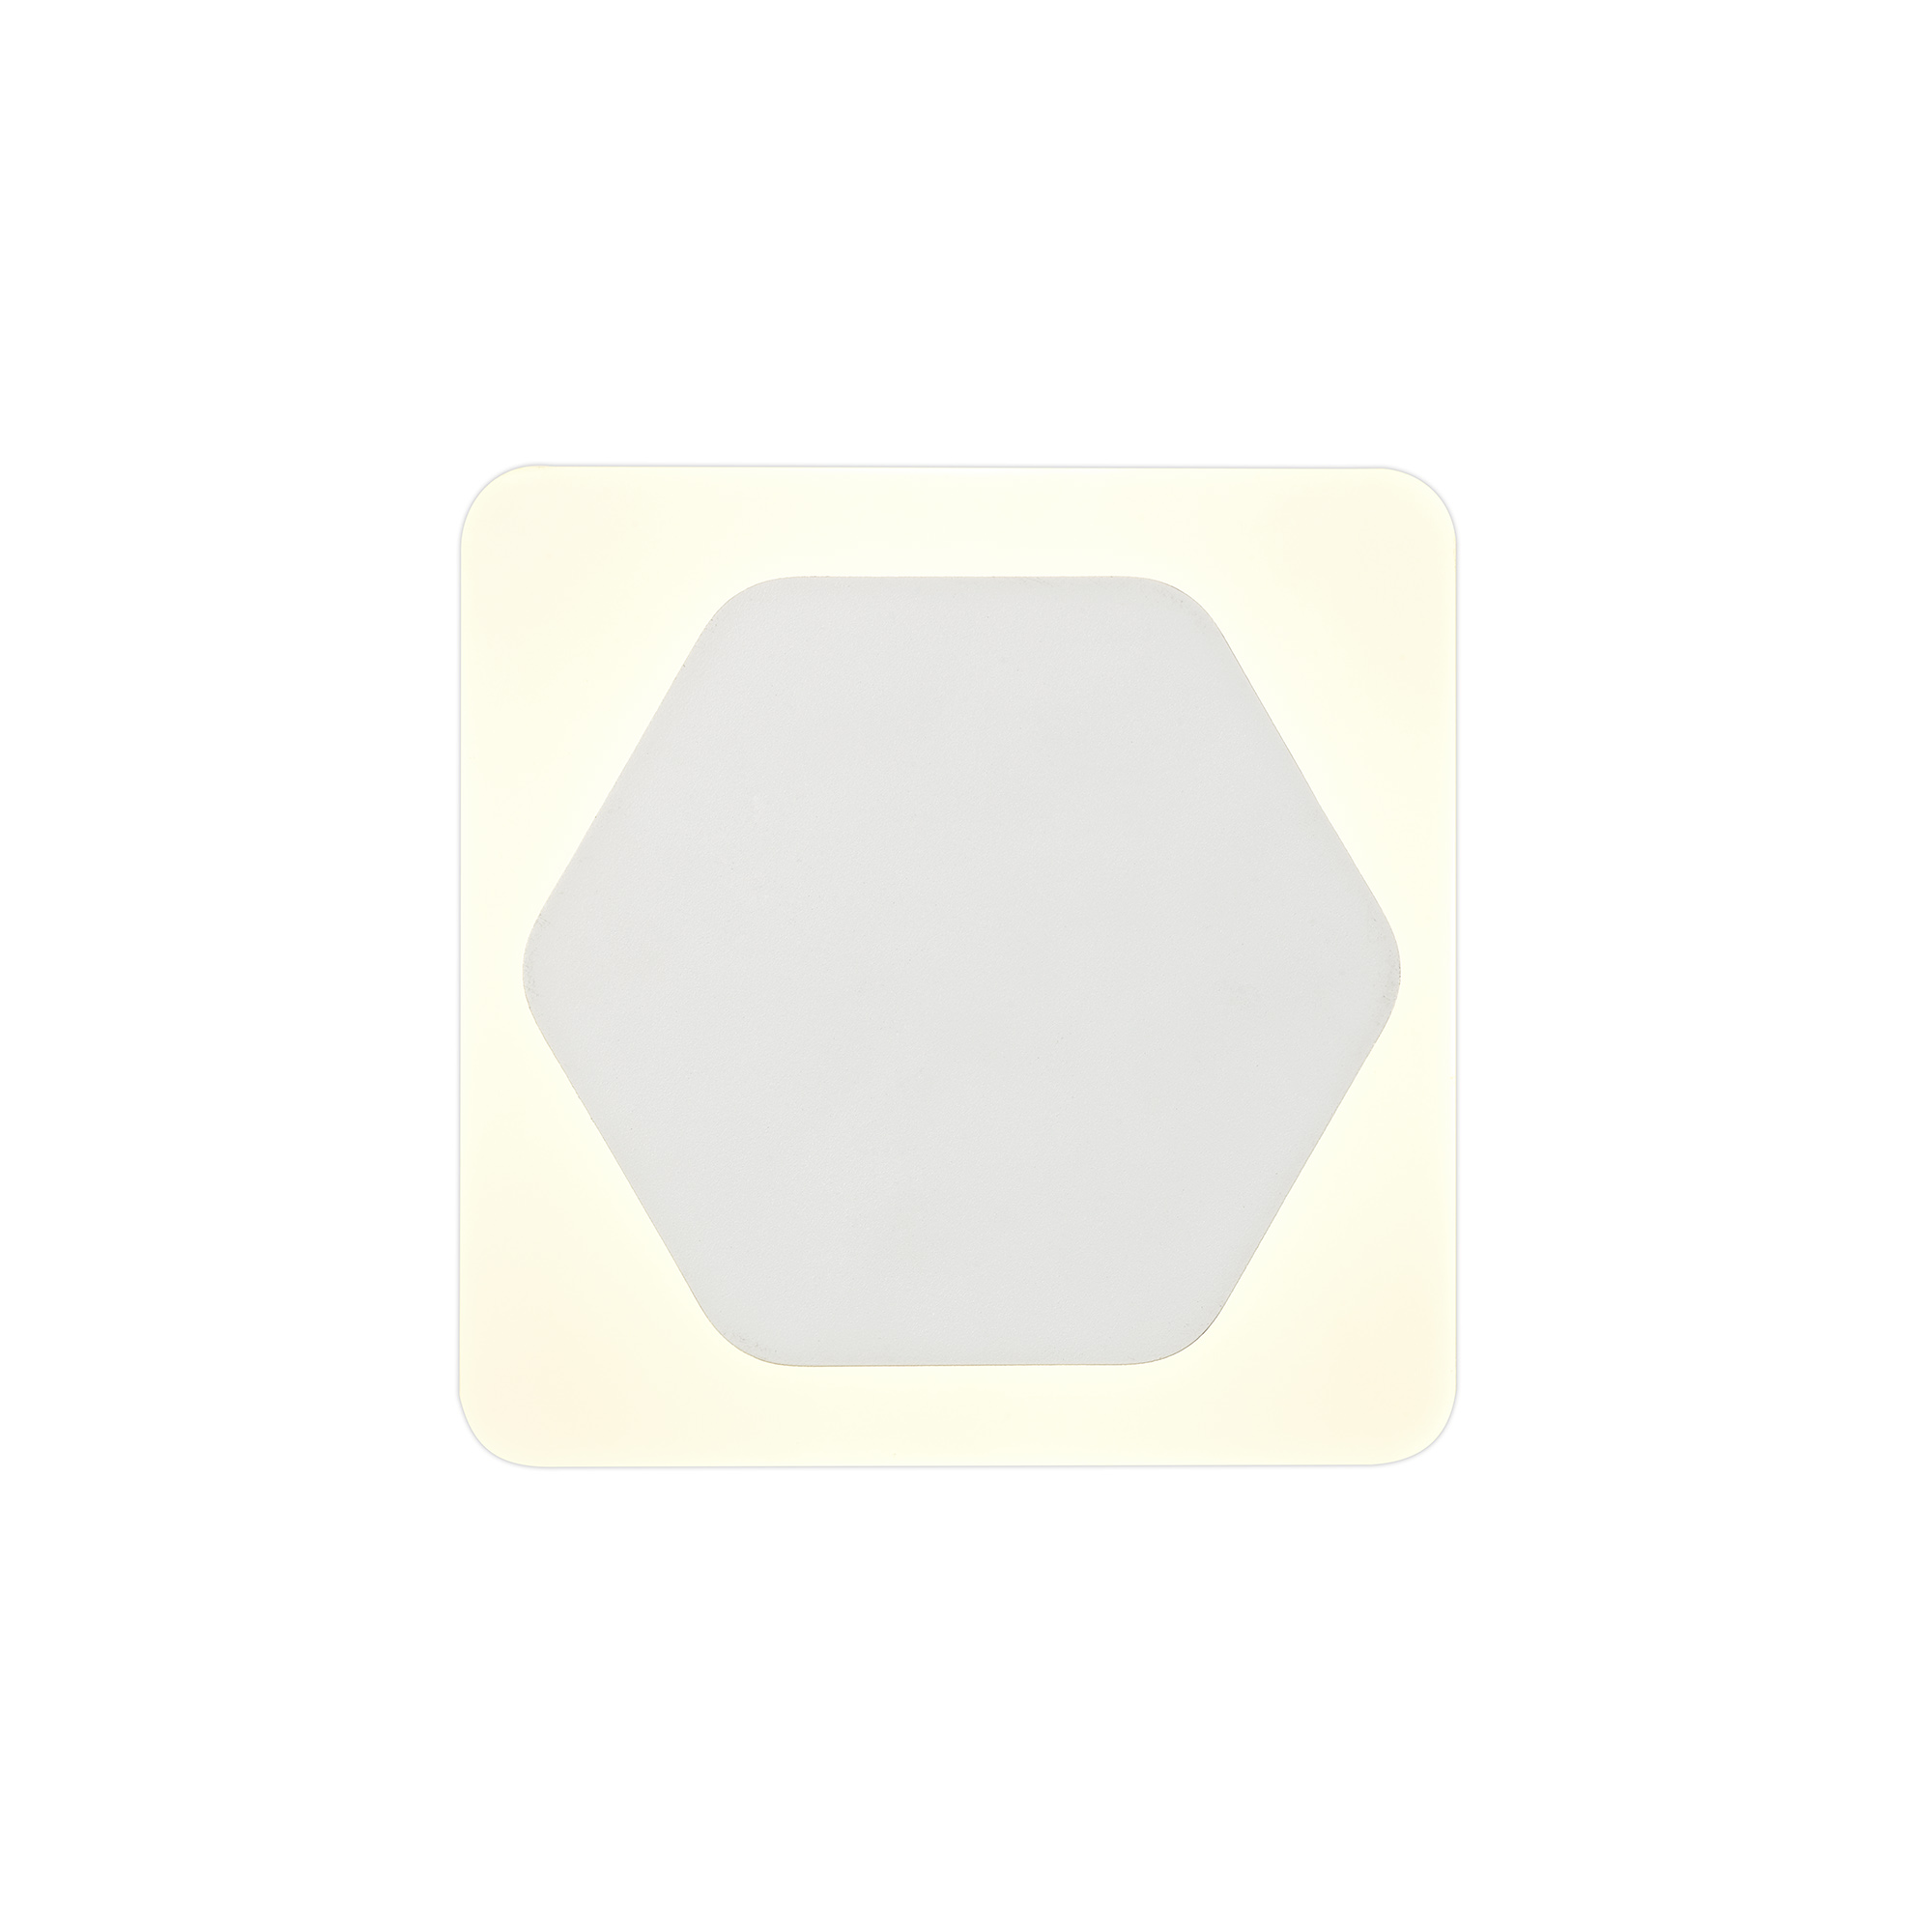 Magnetic Base Wall Lamp, 12W LED 3000K 498lm, 15/19cm Square Centre, Frosted Diffuser